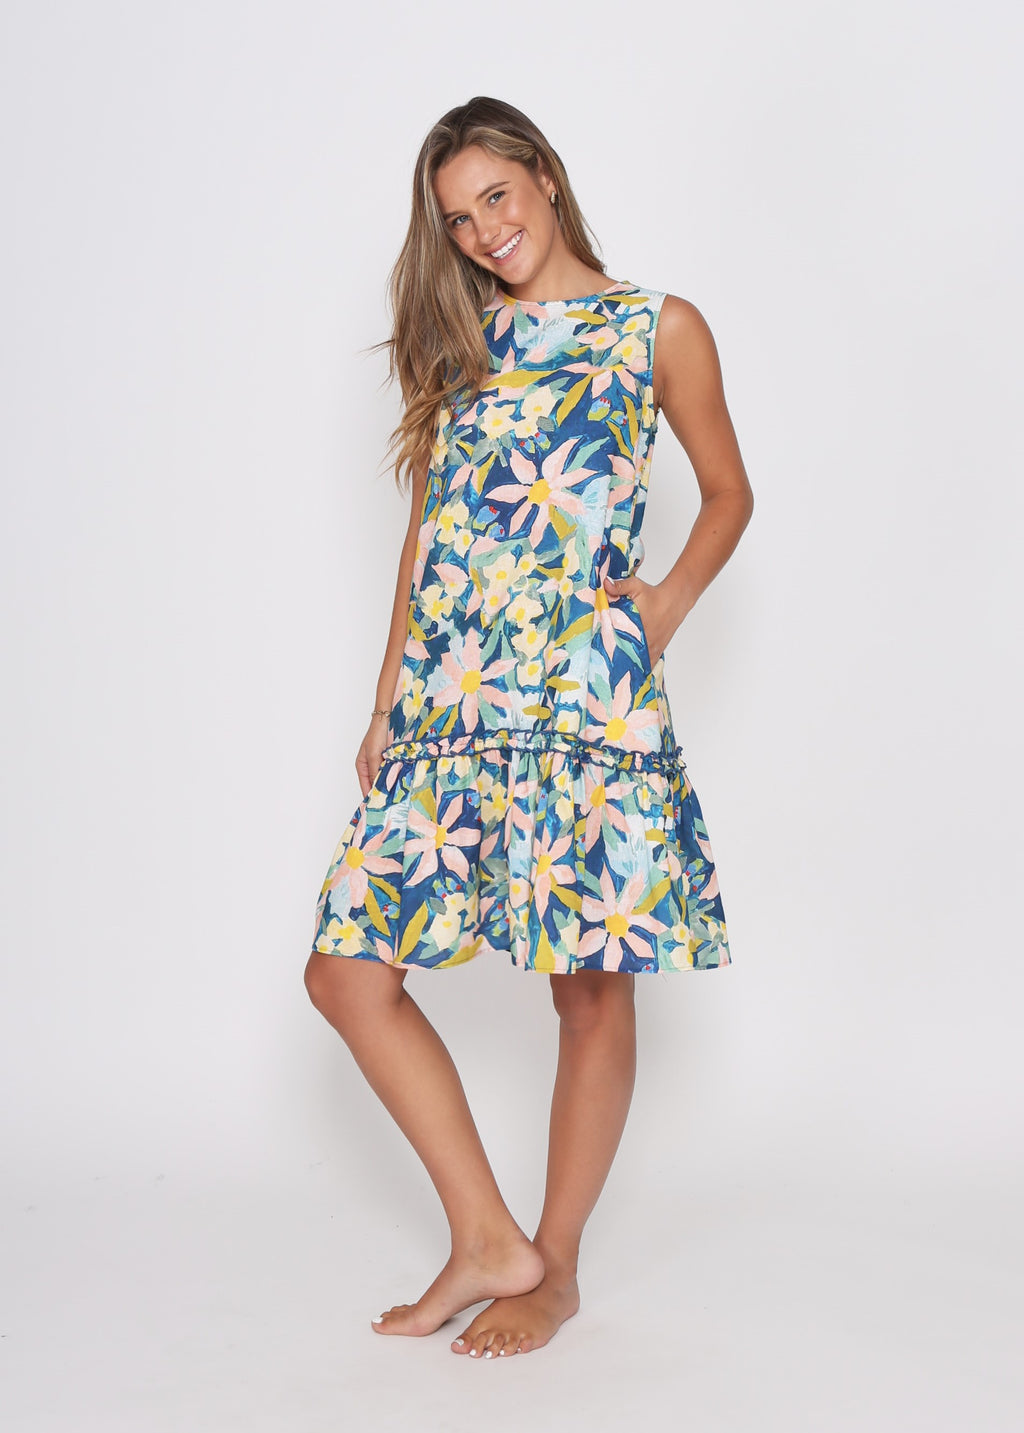 NEW - FIJI DRESS - WATER FLORAL PRINT